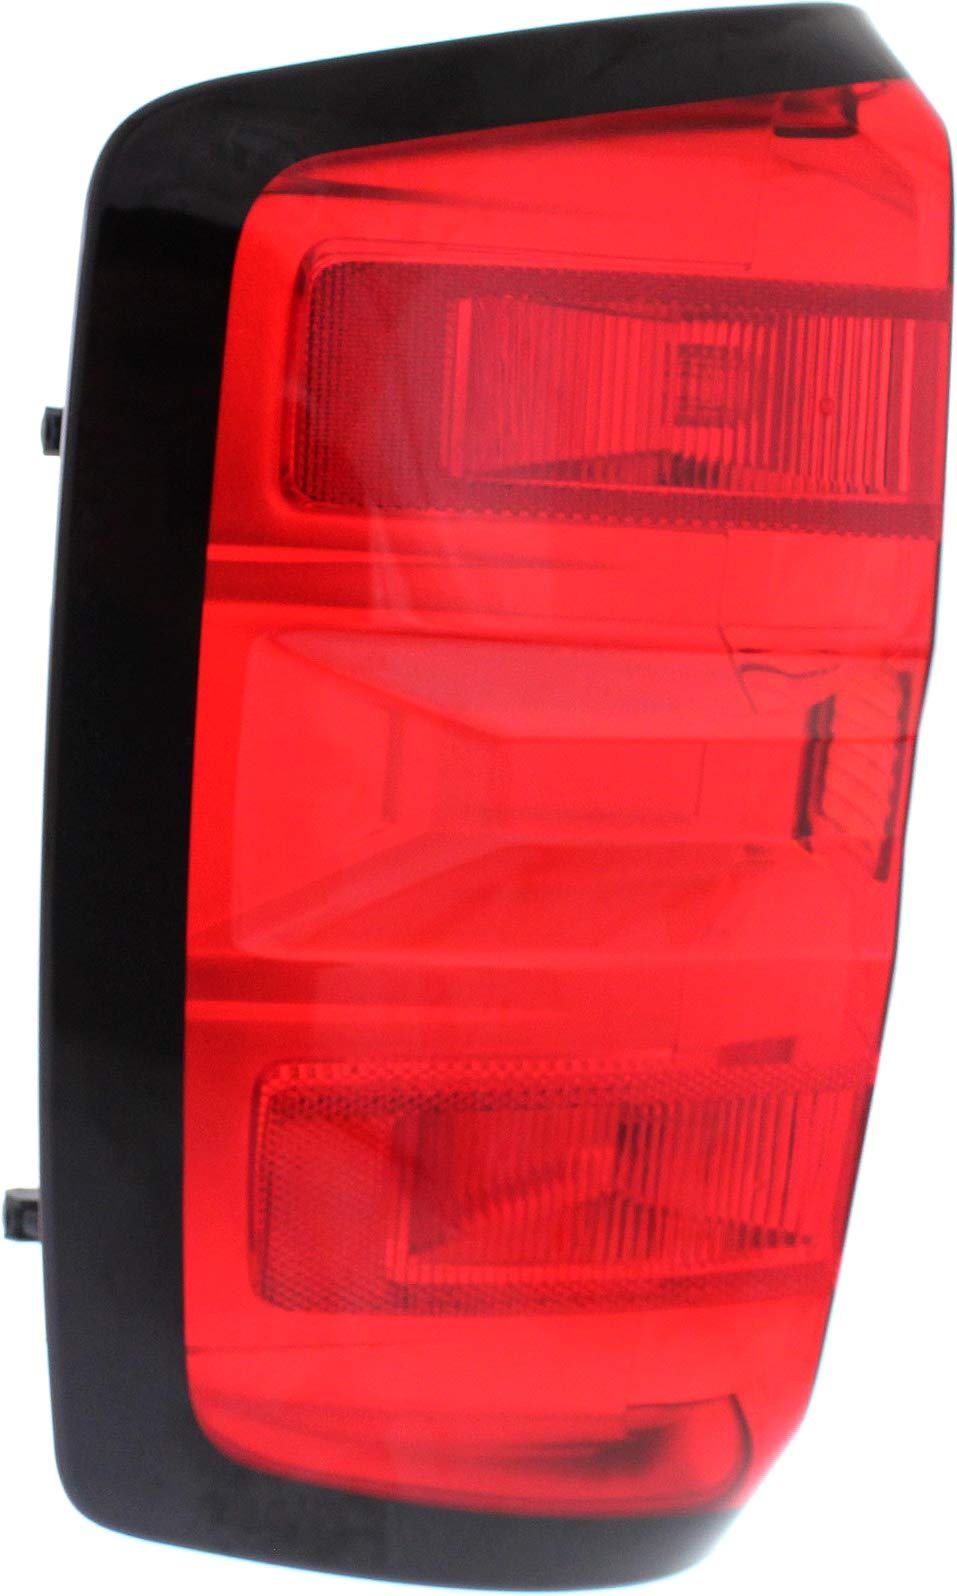 Tail Light Assembly Compatible with 2014-2015 Chevrolet Silverado 1500 (3500HD with Dual Rear Wheels Only) Driver Side